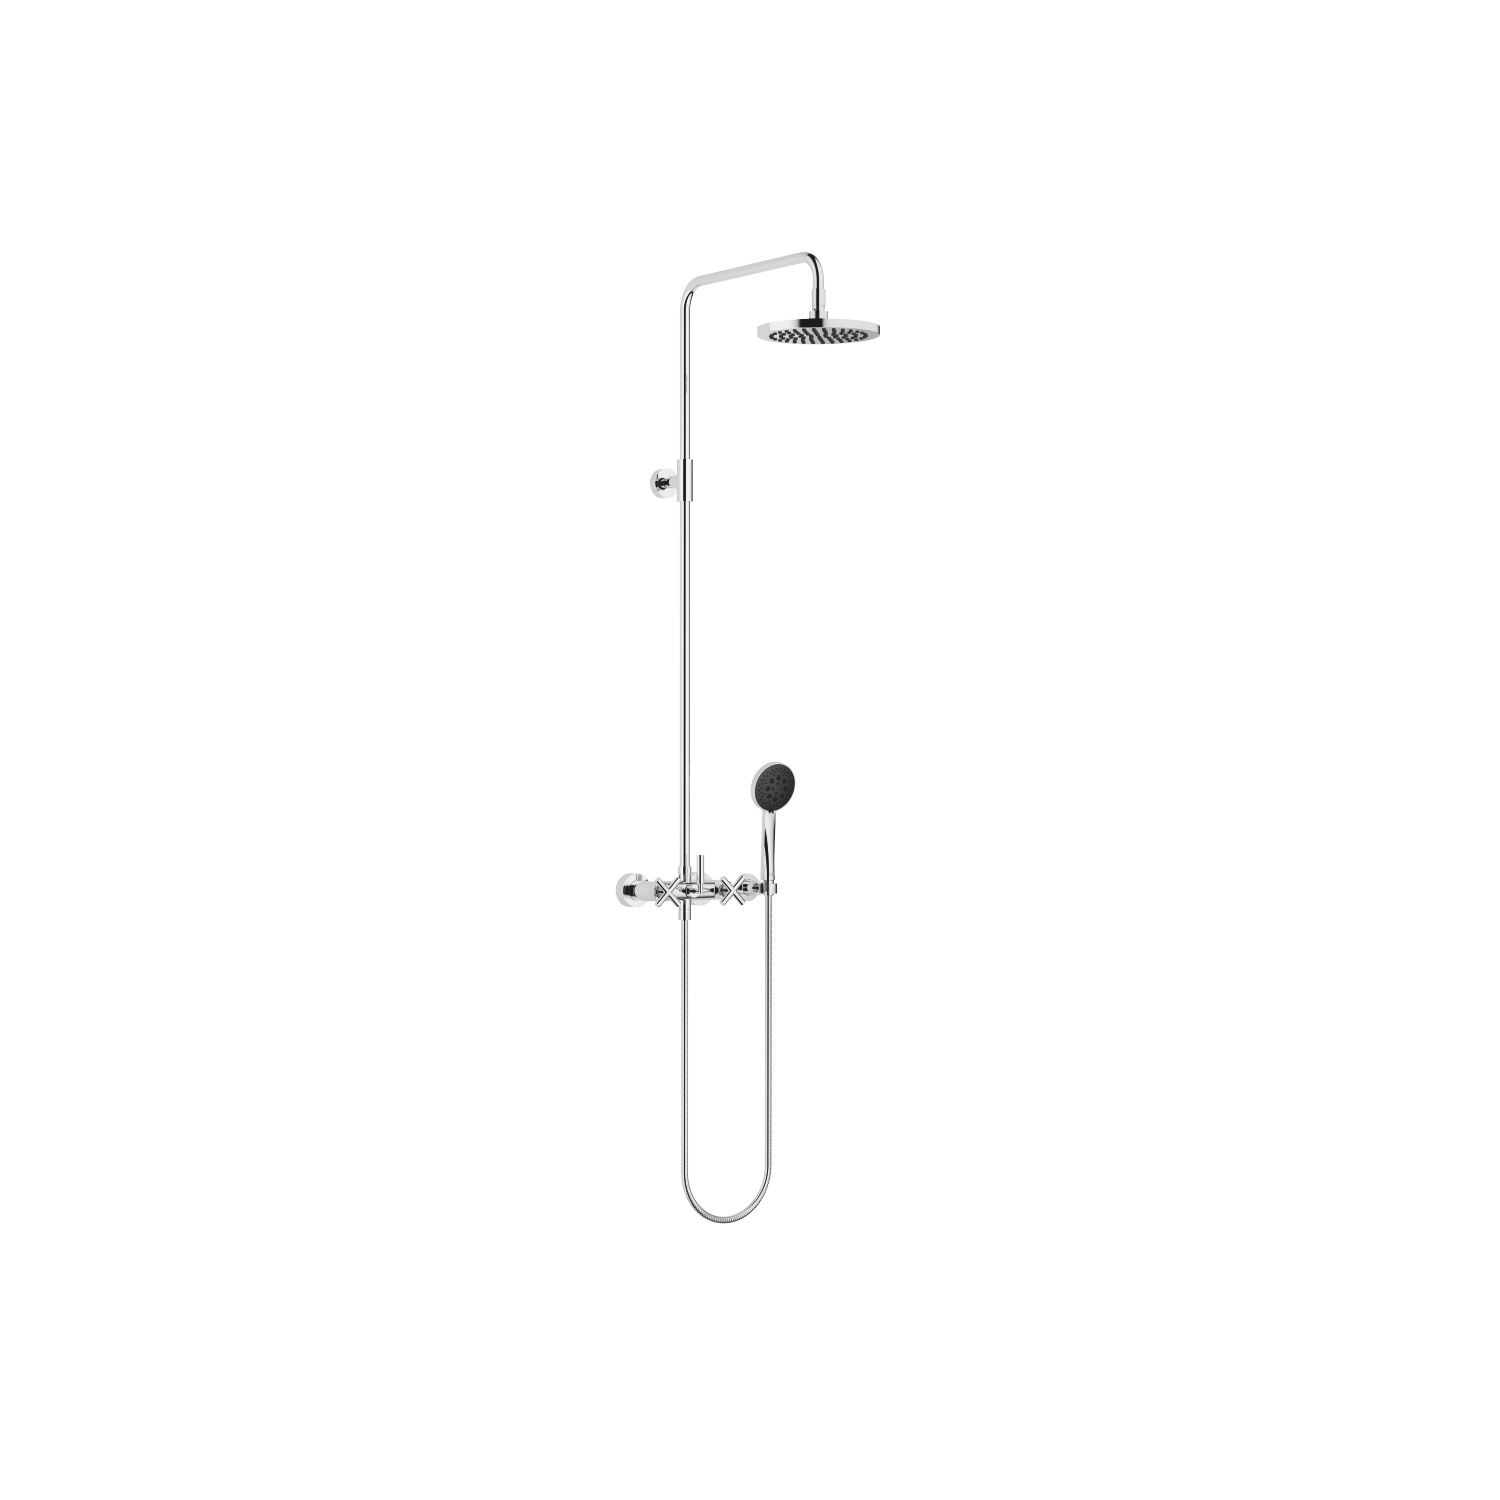 Shower mixer for wall mounting with fixed and hand shower - polished chrome